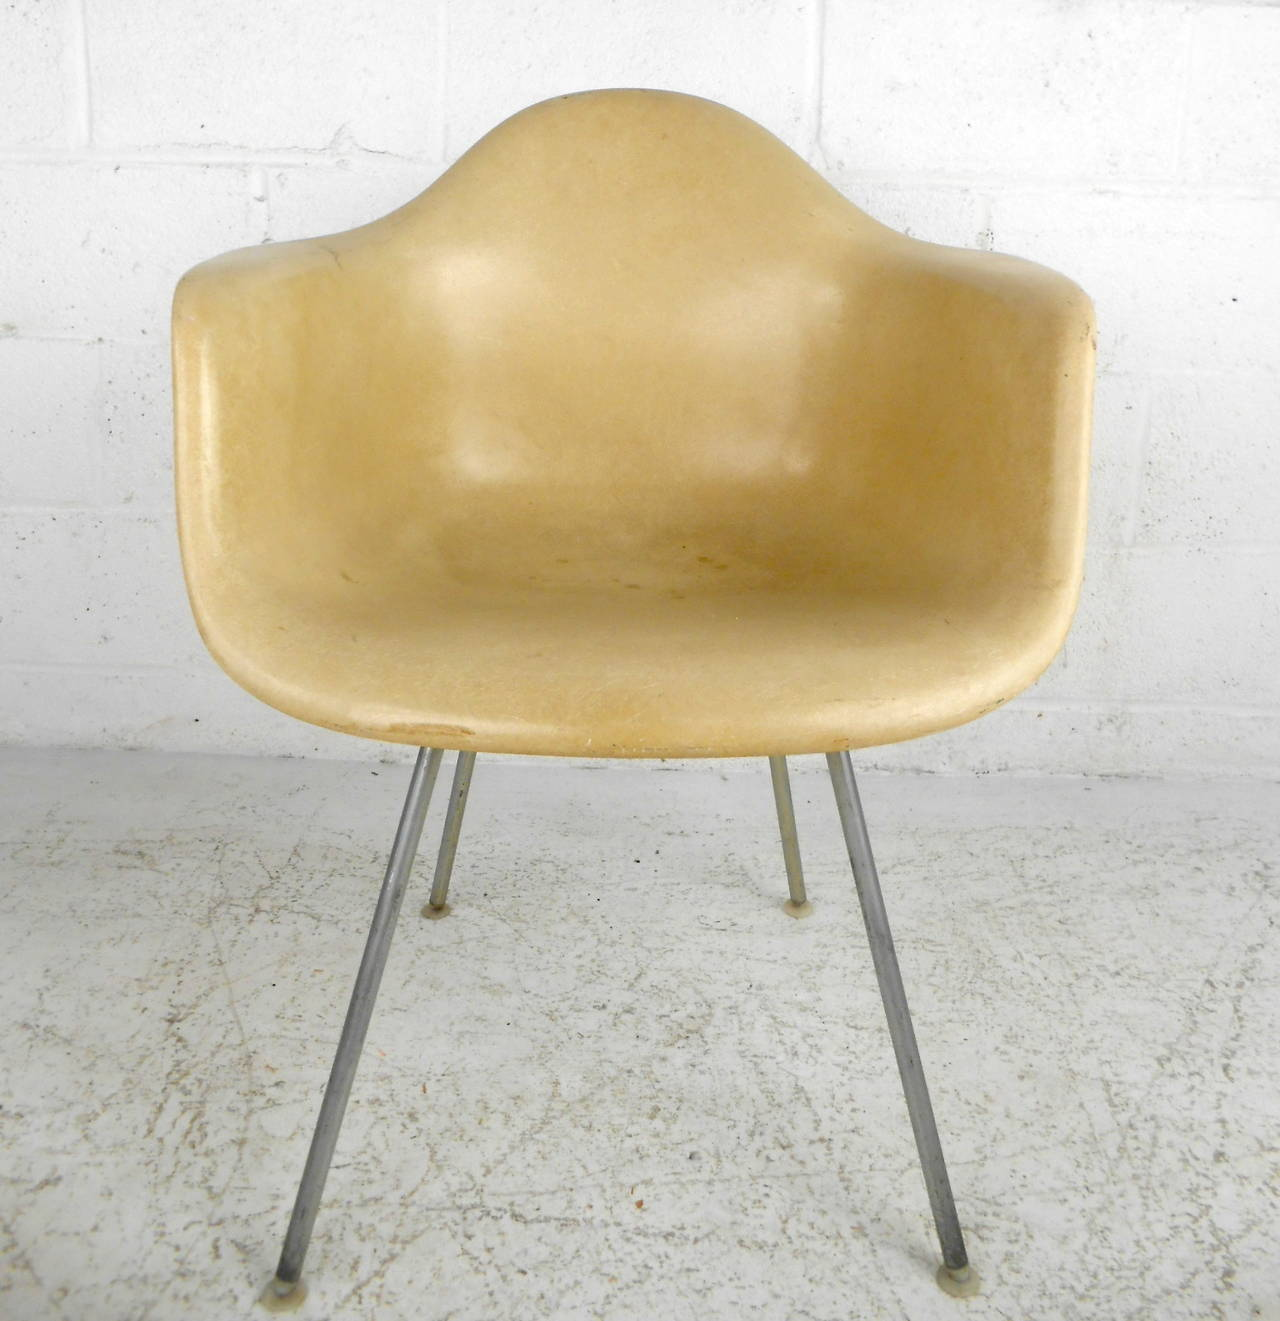 This Mid Century Modern Shell Chair Was Designed By Charles And Ray Eames  For Herman Miller